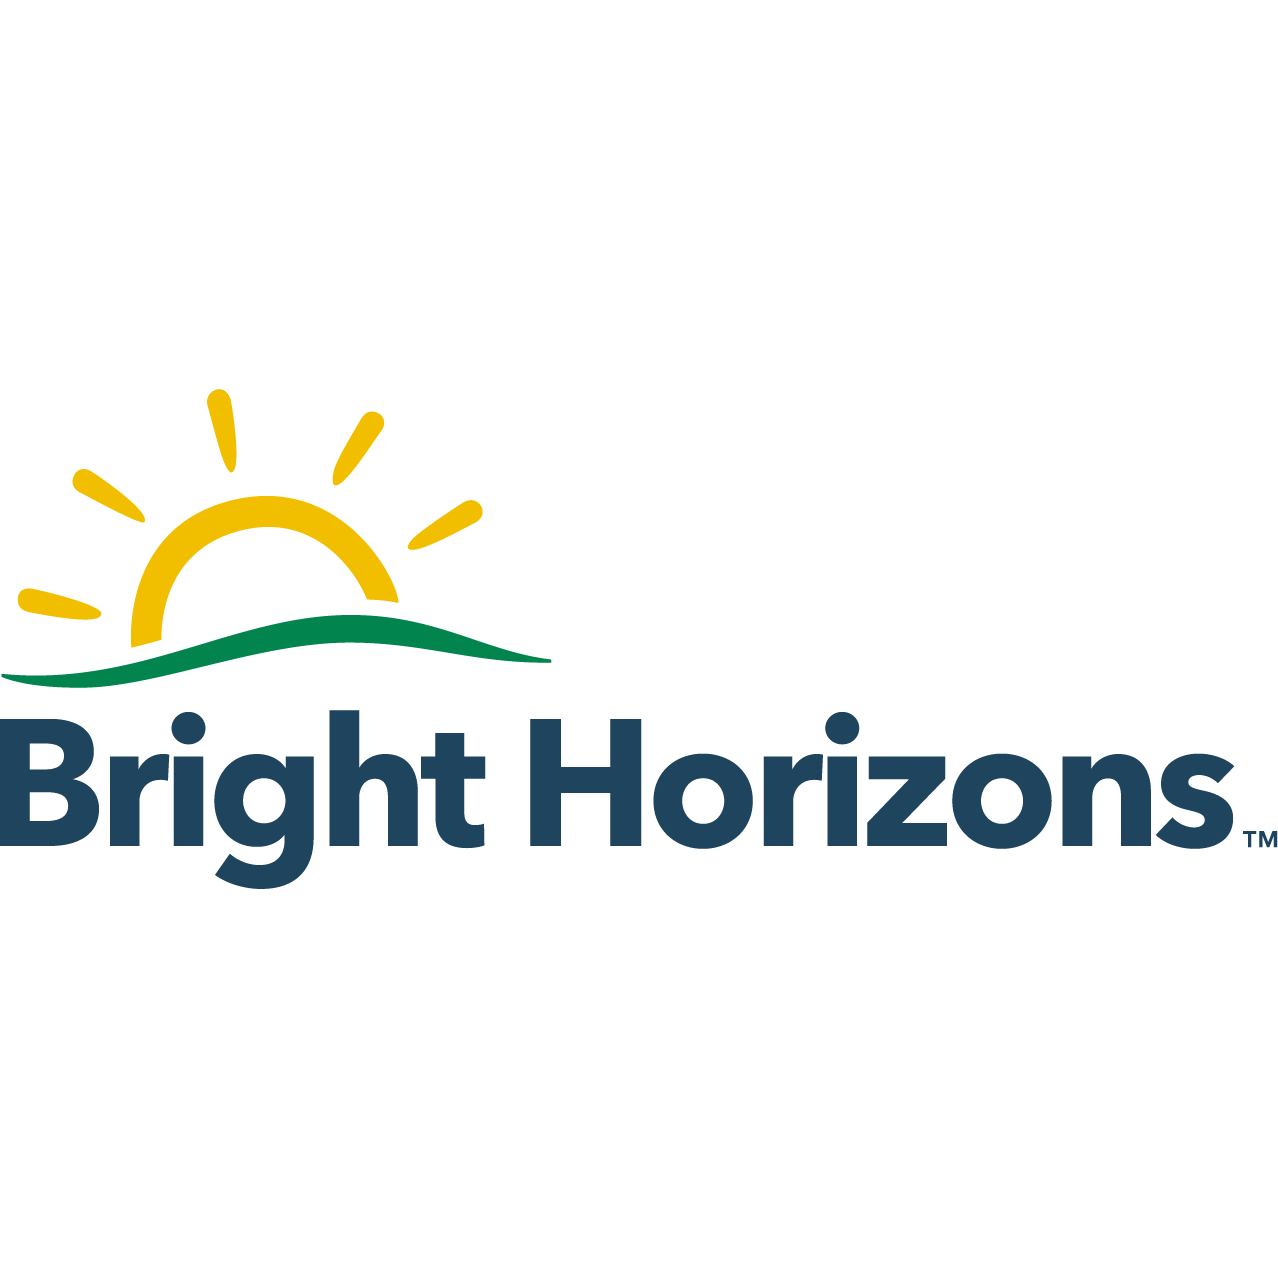 Bright Horizons Woking Day Nursery and Preschool - Woking, Surrey GU22 7QL - 03333 558151 | ShowMeLocal.com